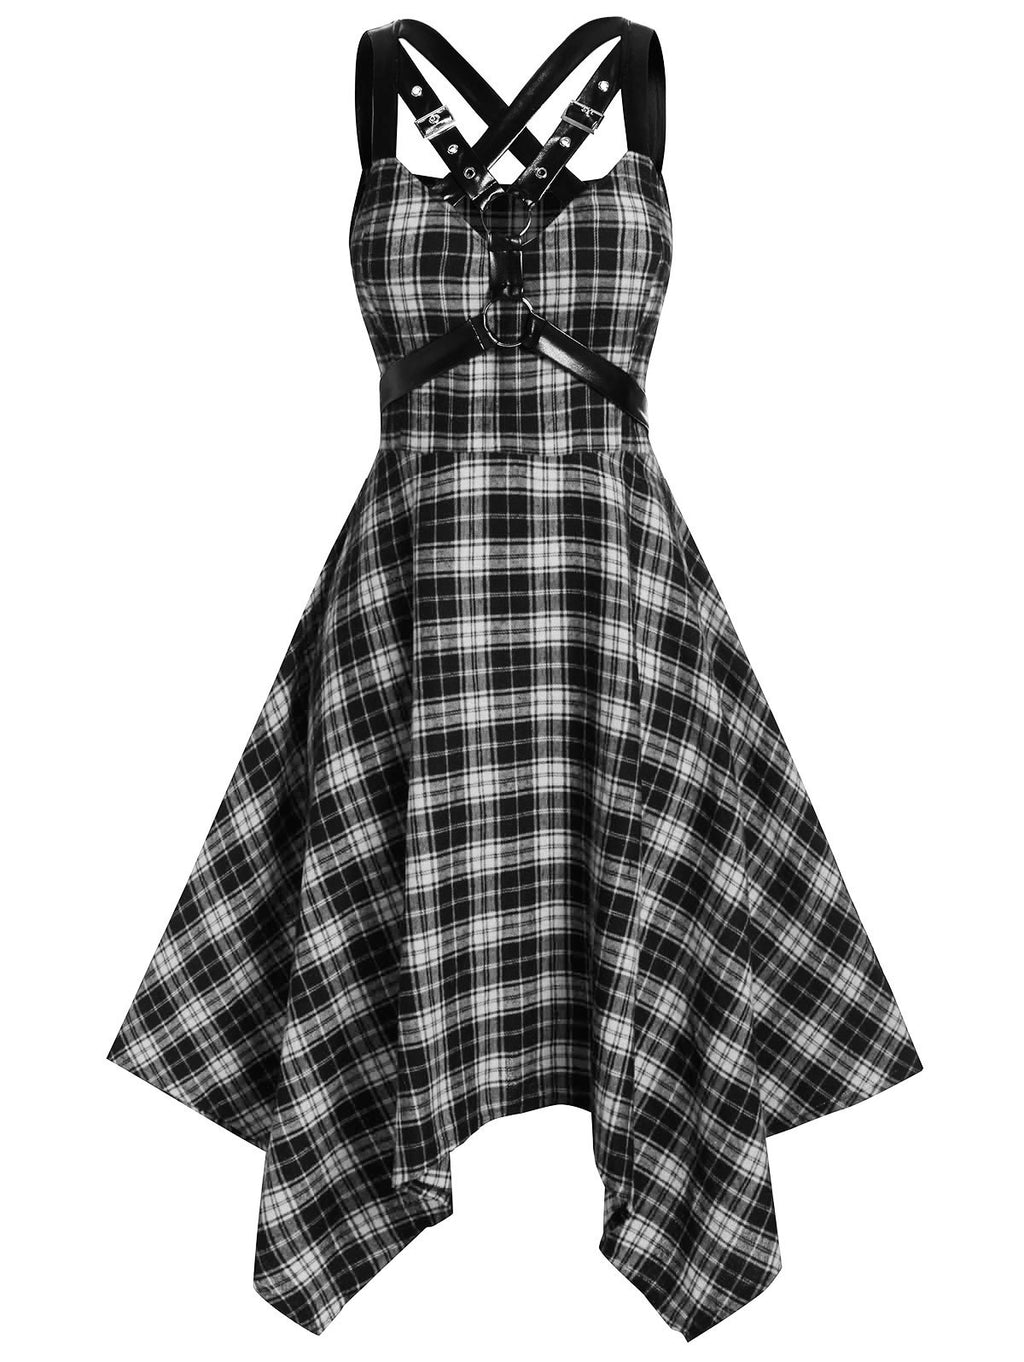 Plus Size Handkerchief Plaid Harness Gothic Dress